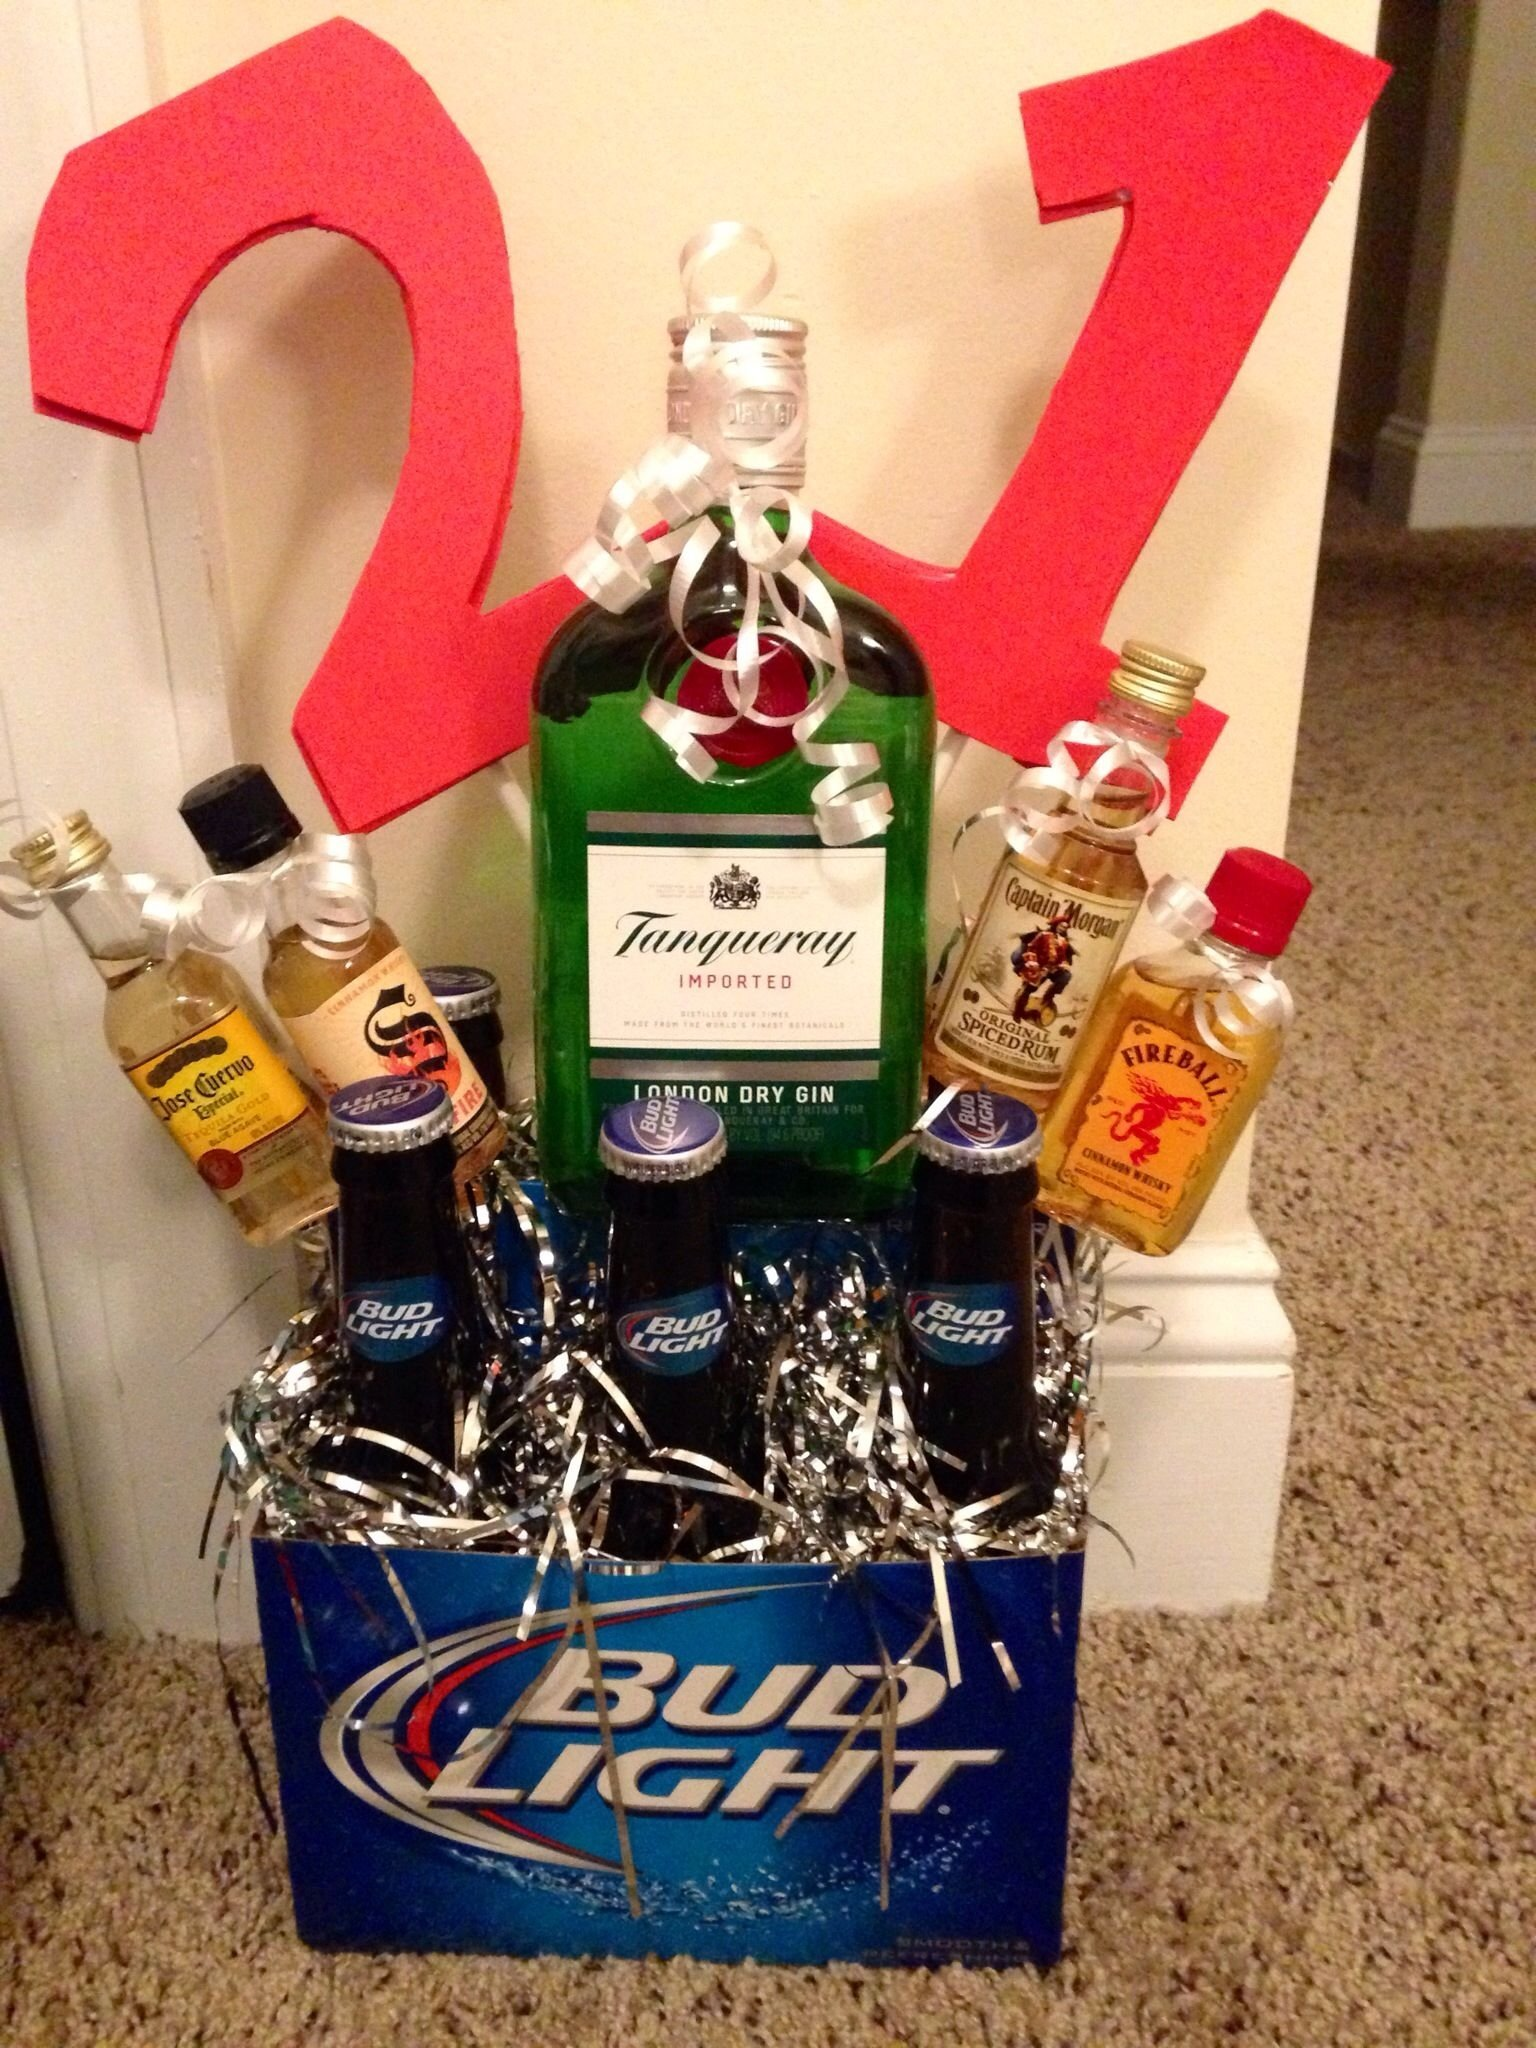 10 Famous 21St Birthday Party Ideas For Guys 21st birthday idea for a guy boys pinterest 21st birthday 2 2020